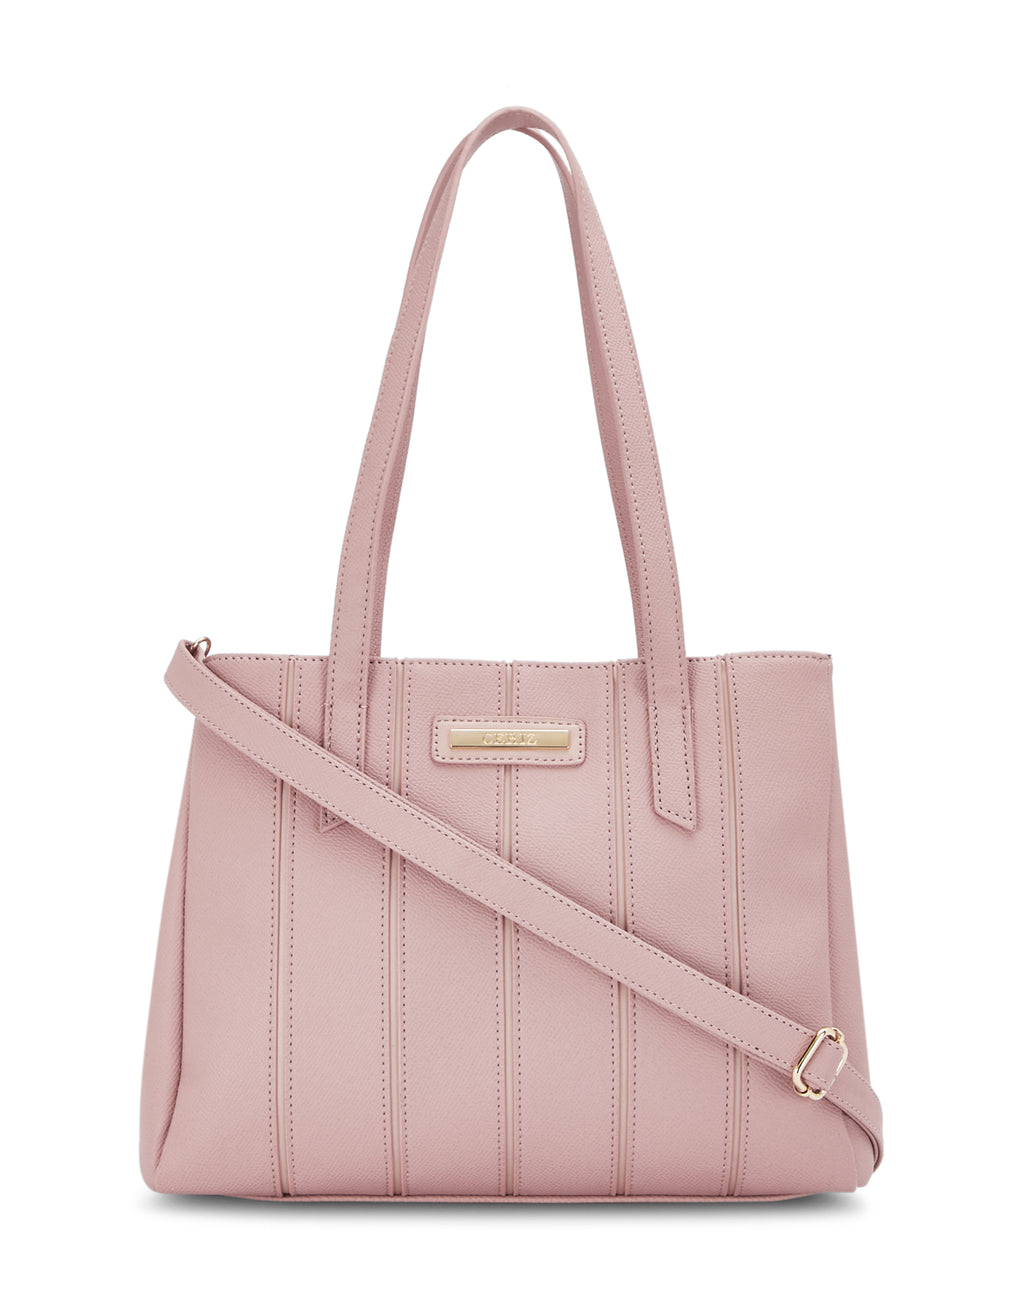 Chantalle Exquisite Light Pink Handbag